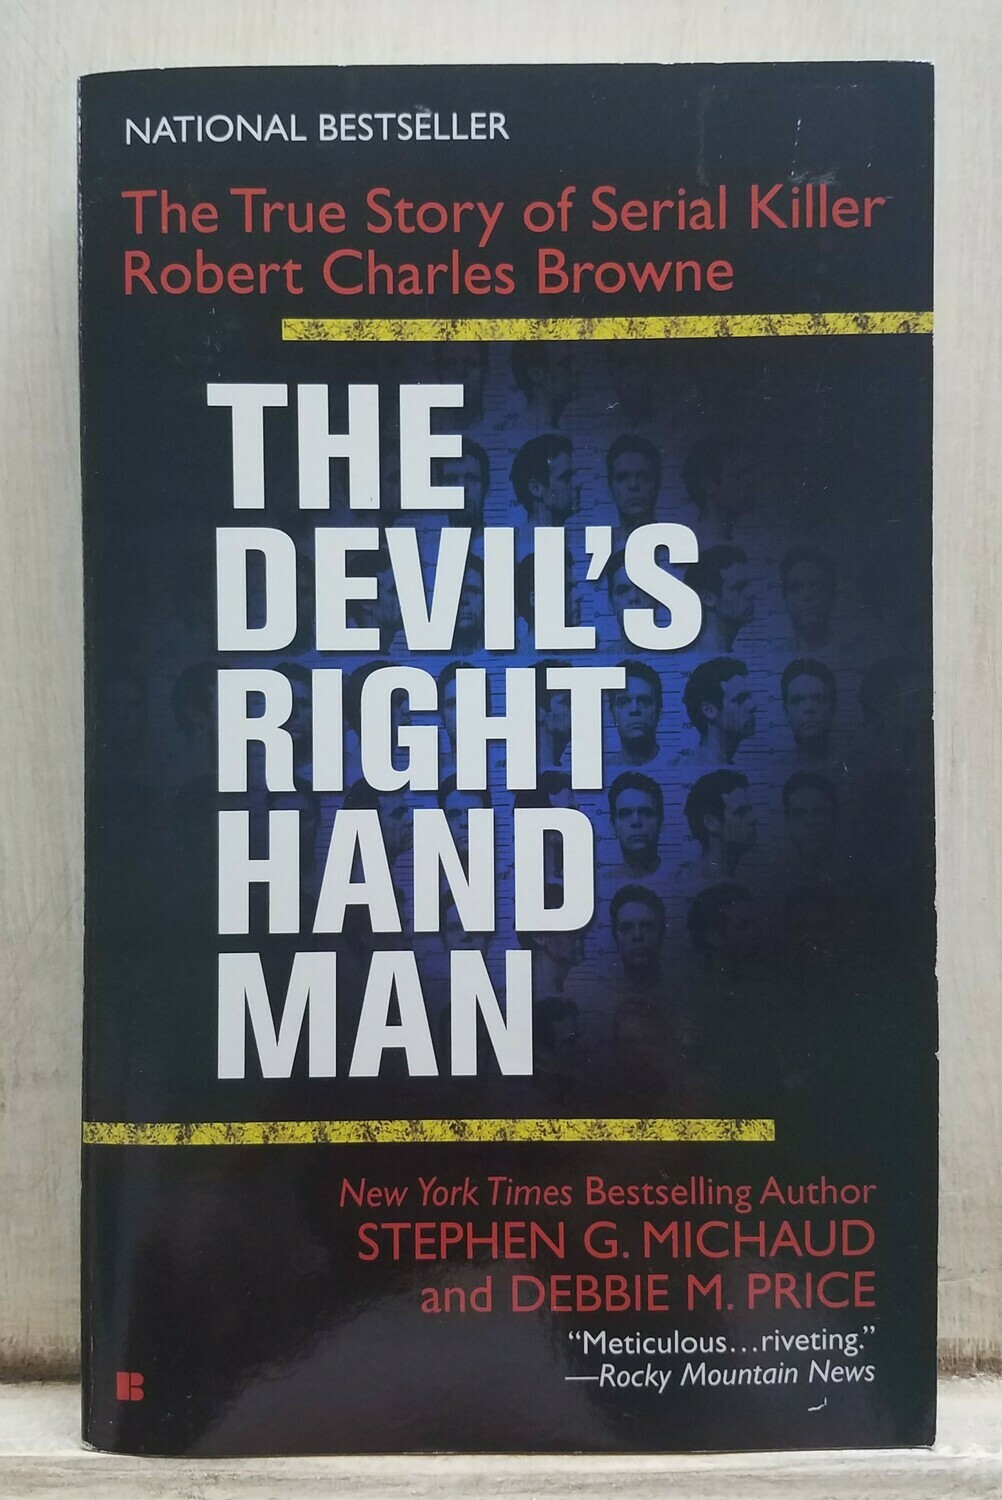 The Devil's Right Hand Man by Stephen G. Michaud and Debbie M. Price